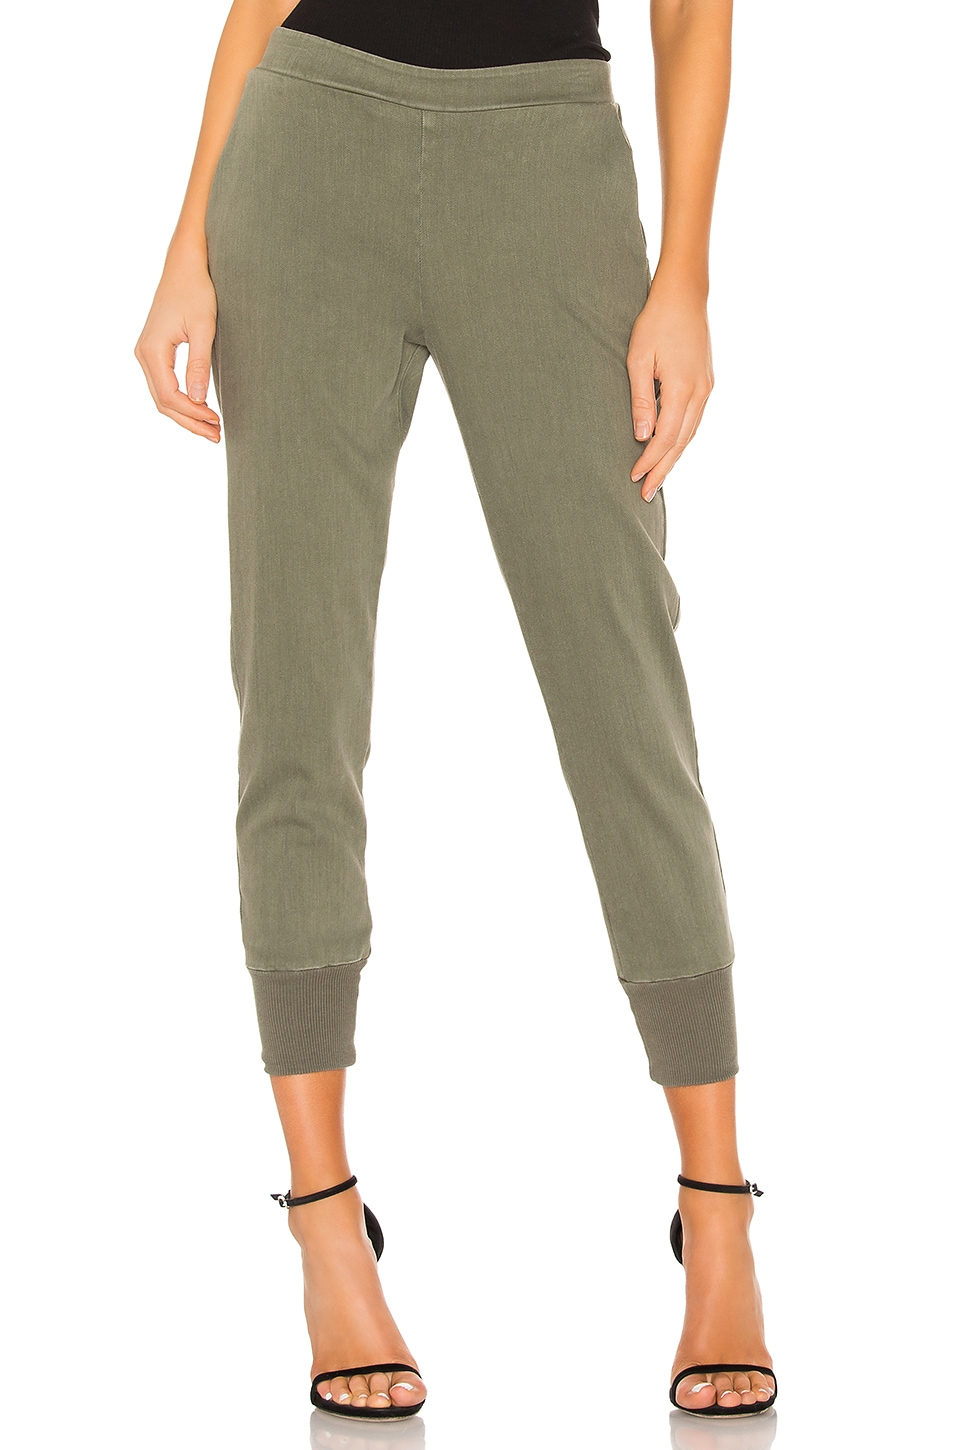 Enza Costa Cuffed Jogger in Washed Military